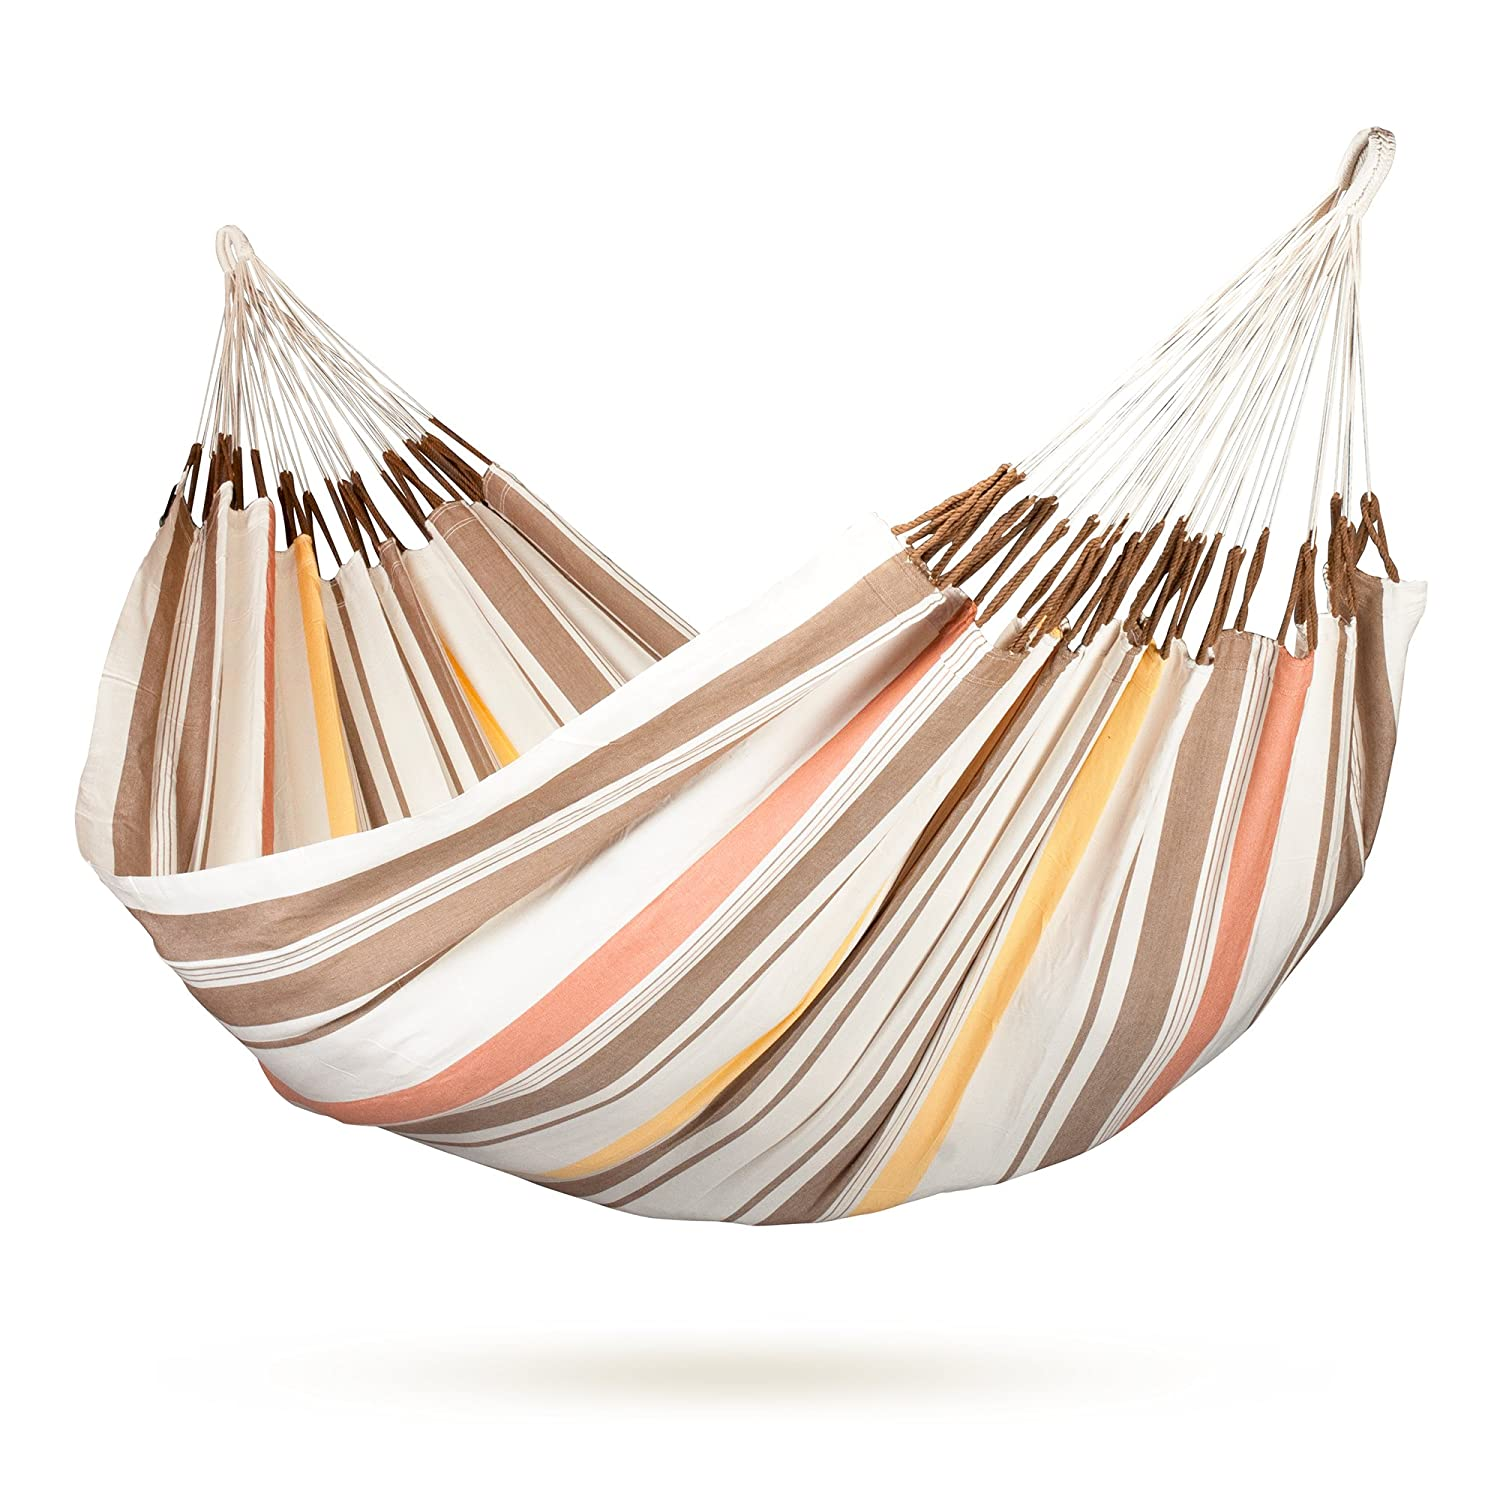 swings la lasiesta siesta colombian products habana lounger organic hammocks nougat chair n hammock